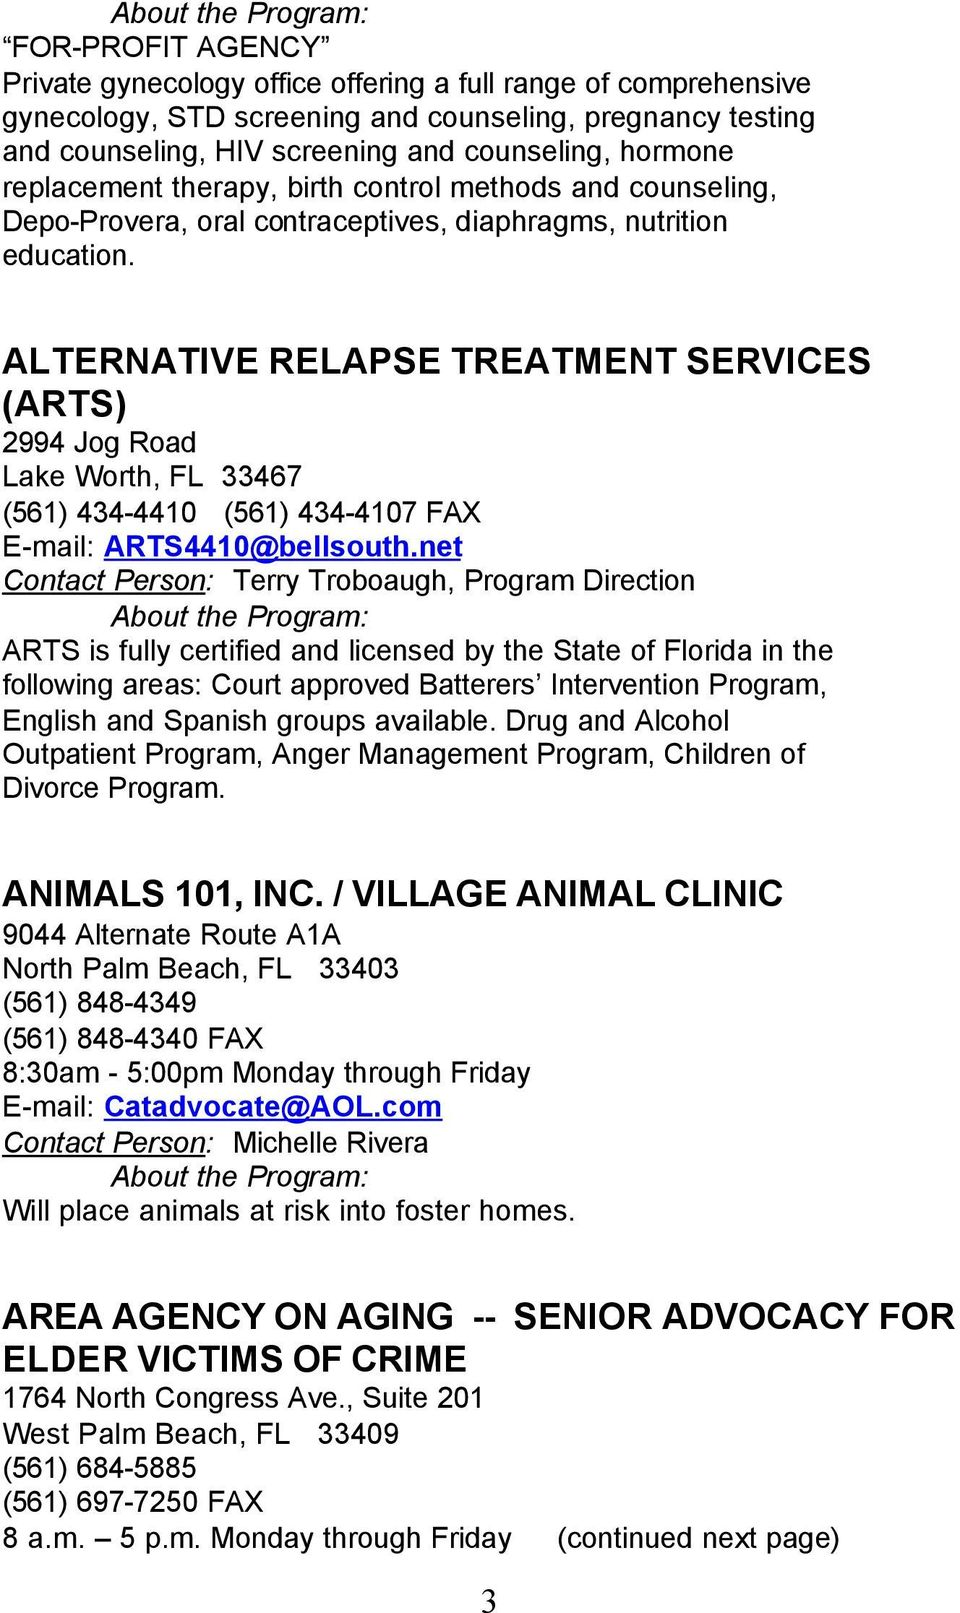 ALTERNATIVE RELAPSE TREATMENT SERVICES (ARTS) 2994 Jog Road Lake Worth, FL 33467 (561) 434-4410 (561) 434-4107 FAX E-mail: ARTS4410@bellsouth.